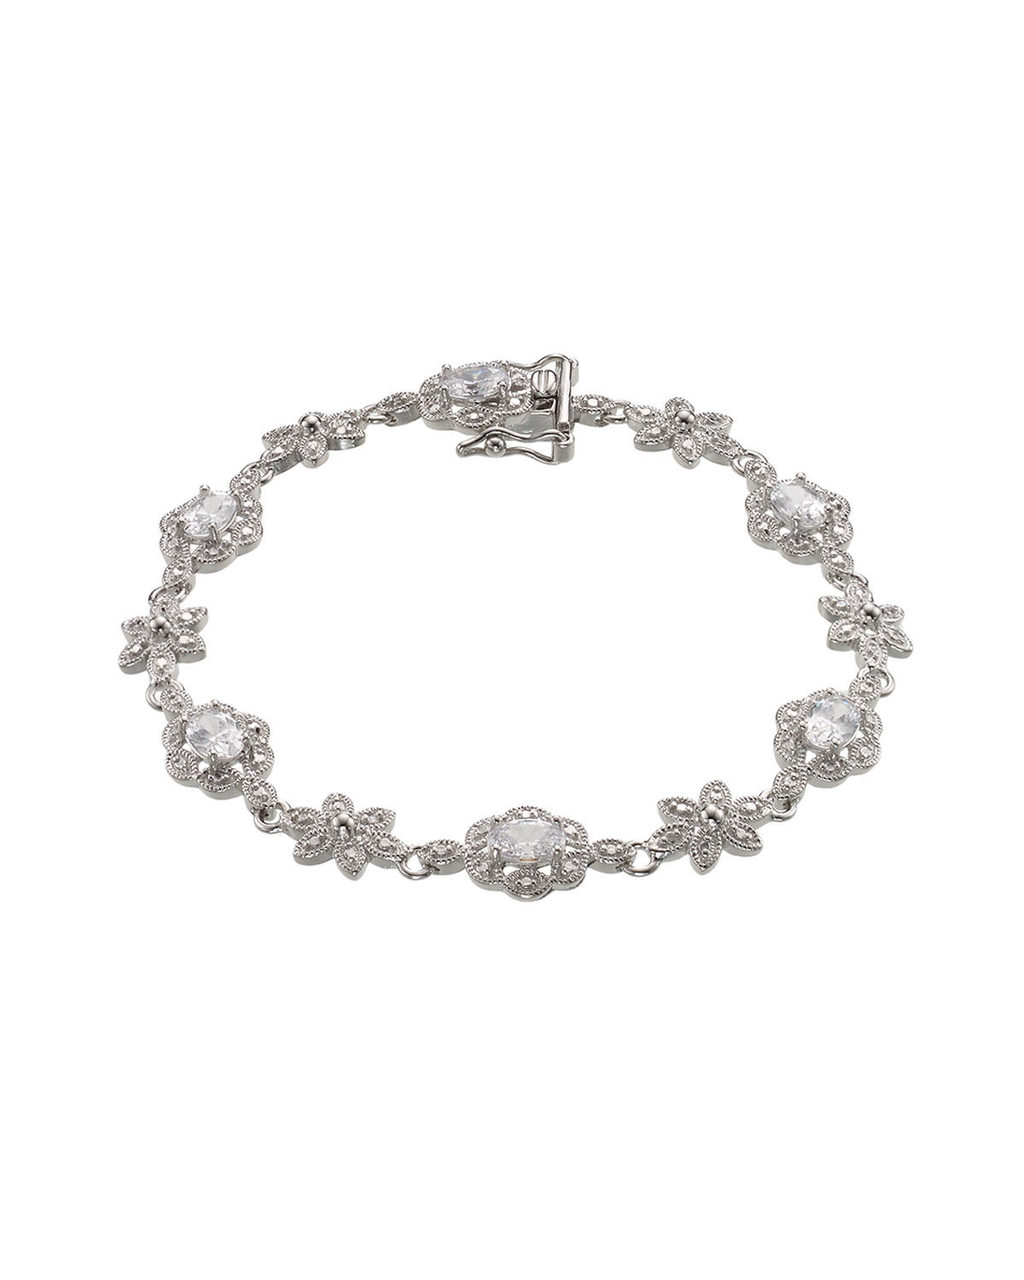 Cubic Zirconia Flower Bracelet - predominant colour: silver; occasions: evening, occasion; style: bangle/standard; size: standard; material: chain/metal; finish: metallic; season: s/s 2016; wardrobe: event